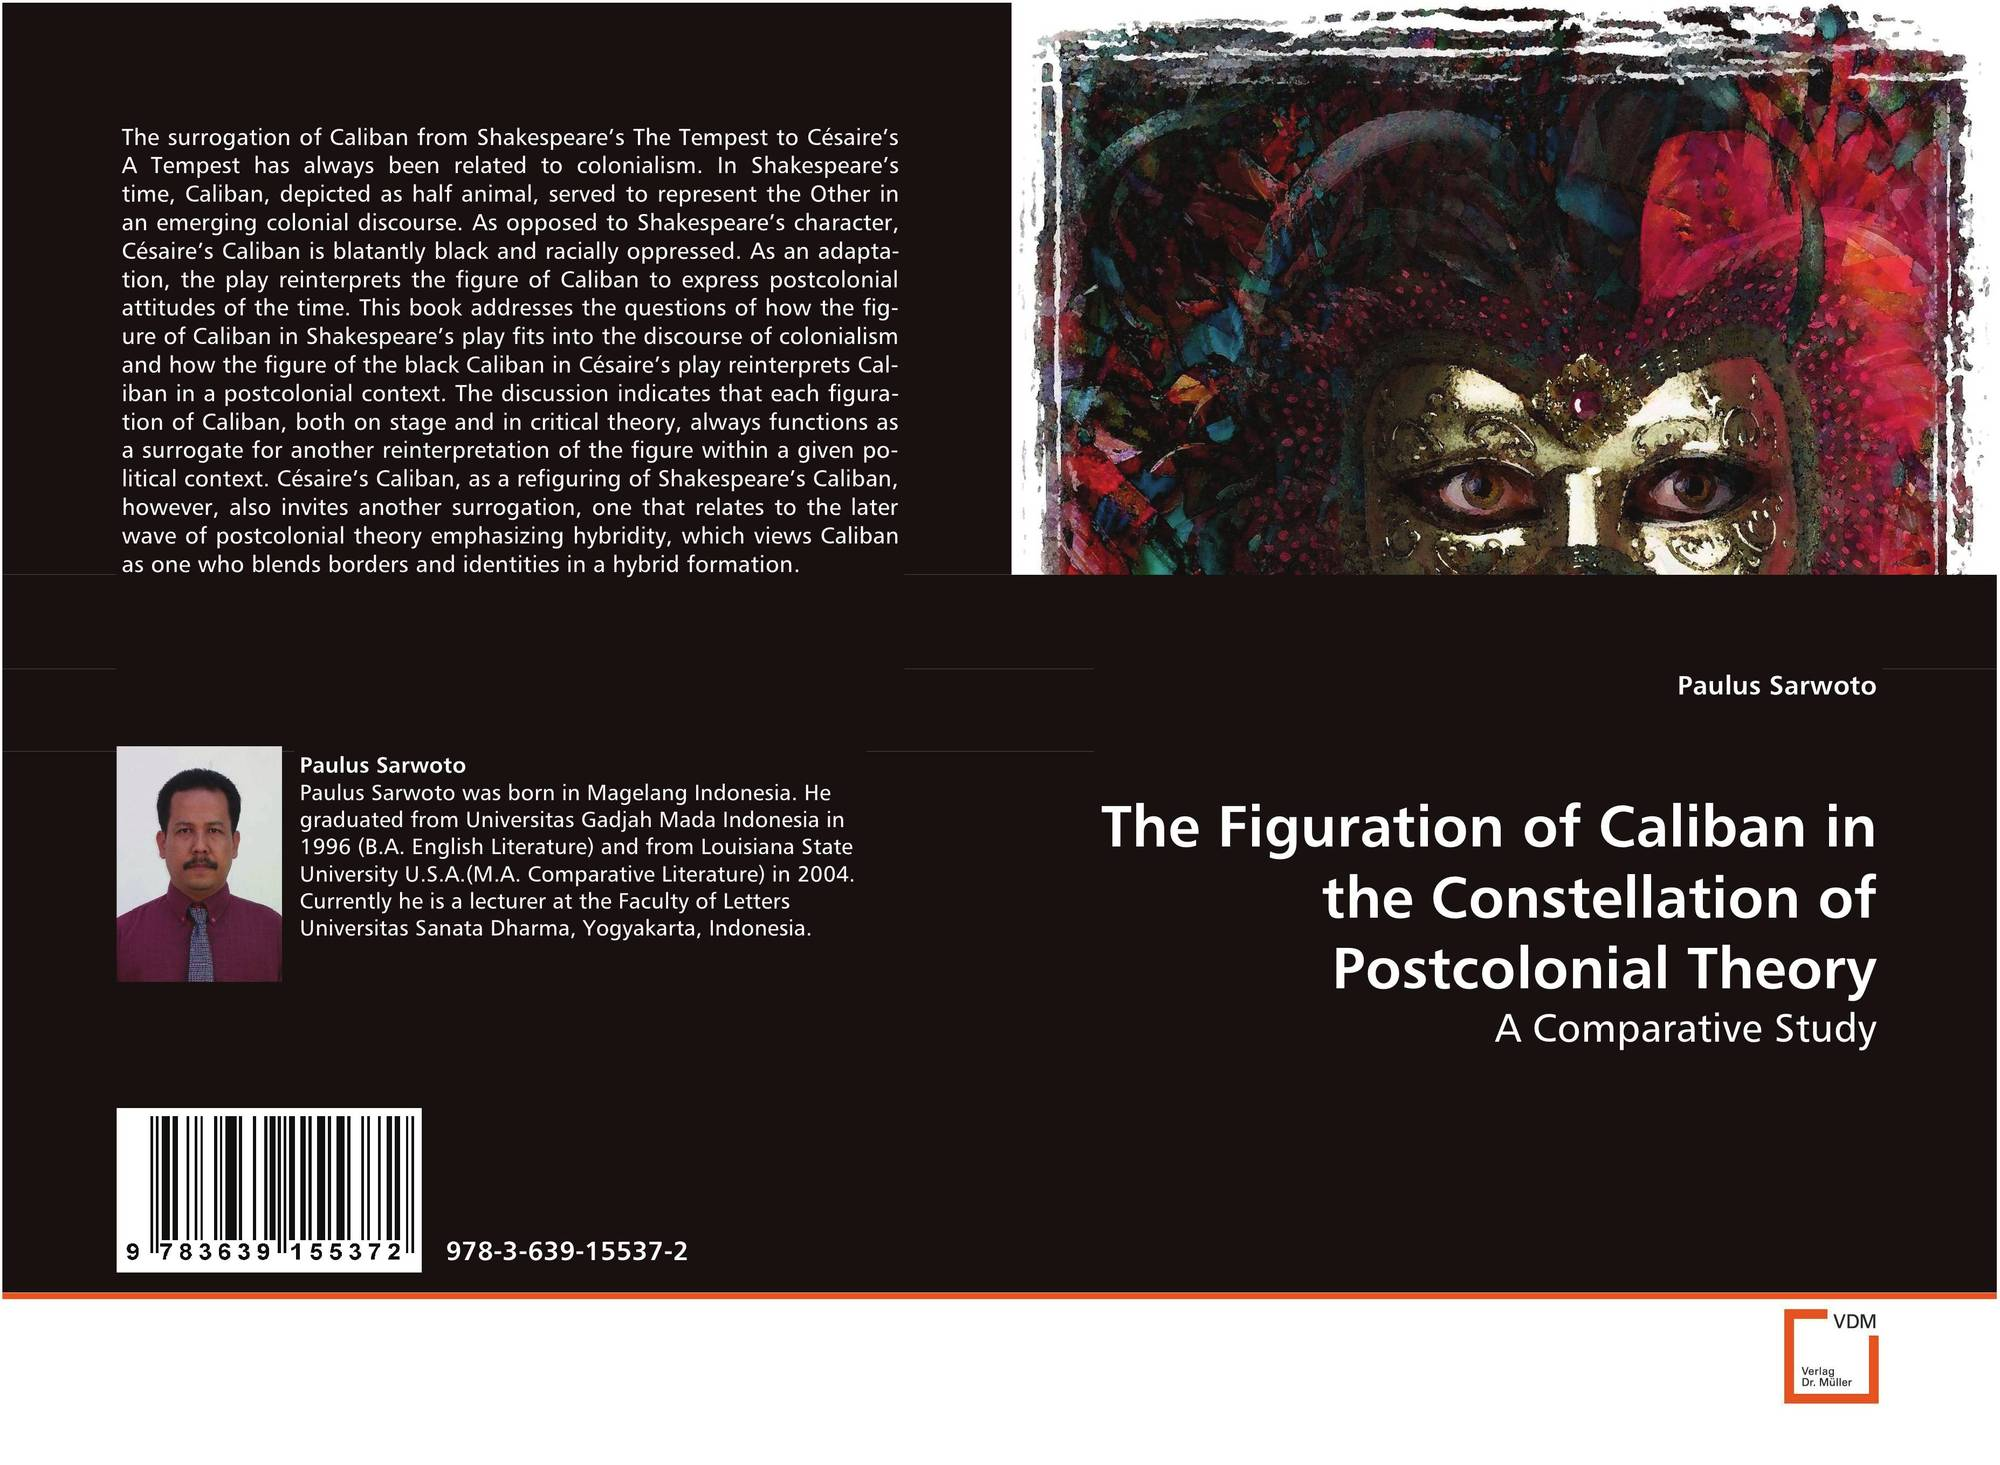 The Figuration of Caliban in the Constellation